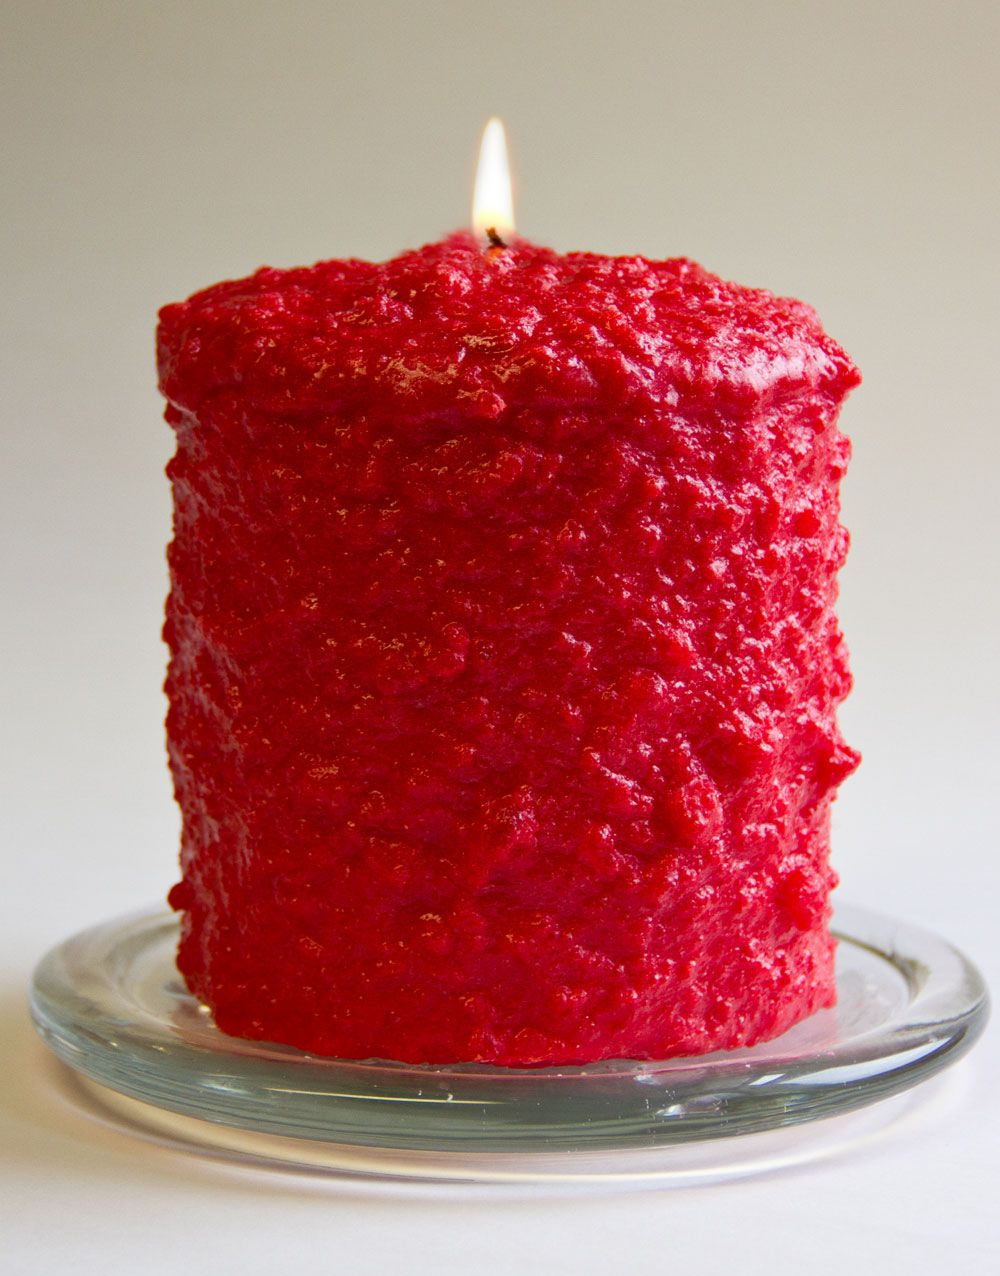 Cake Candle - Warm Glow - Apple Cinnamon - 5in x 4.5in